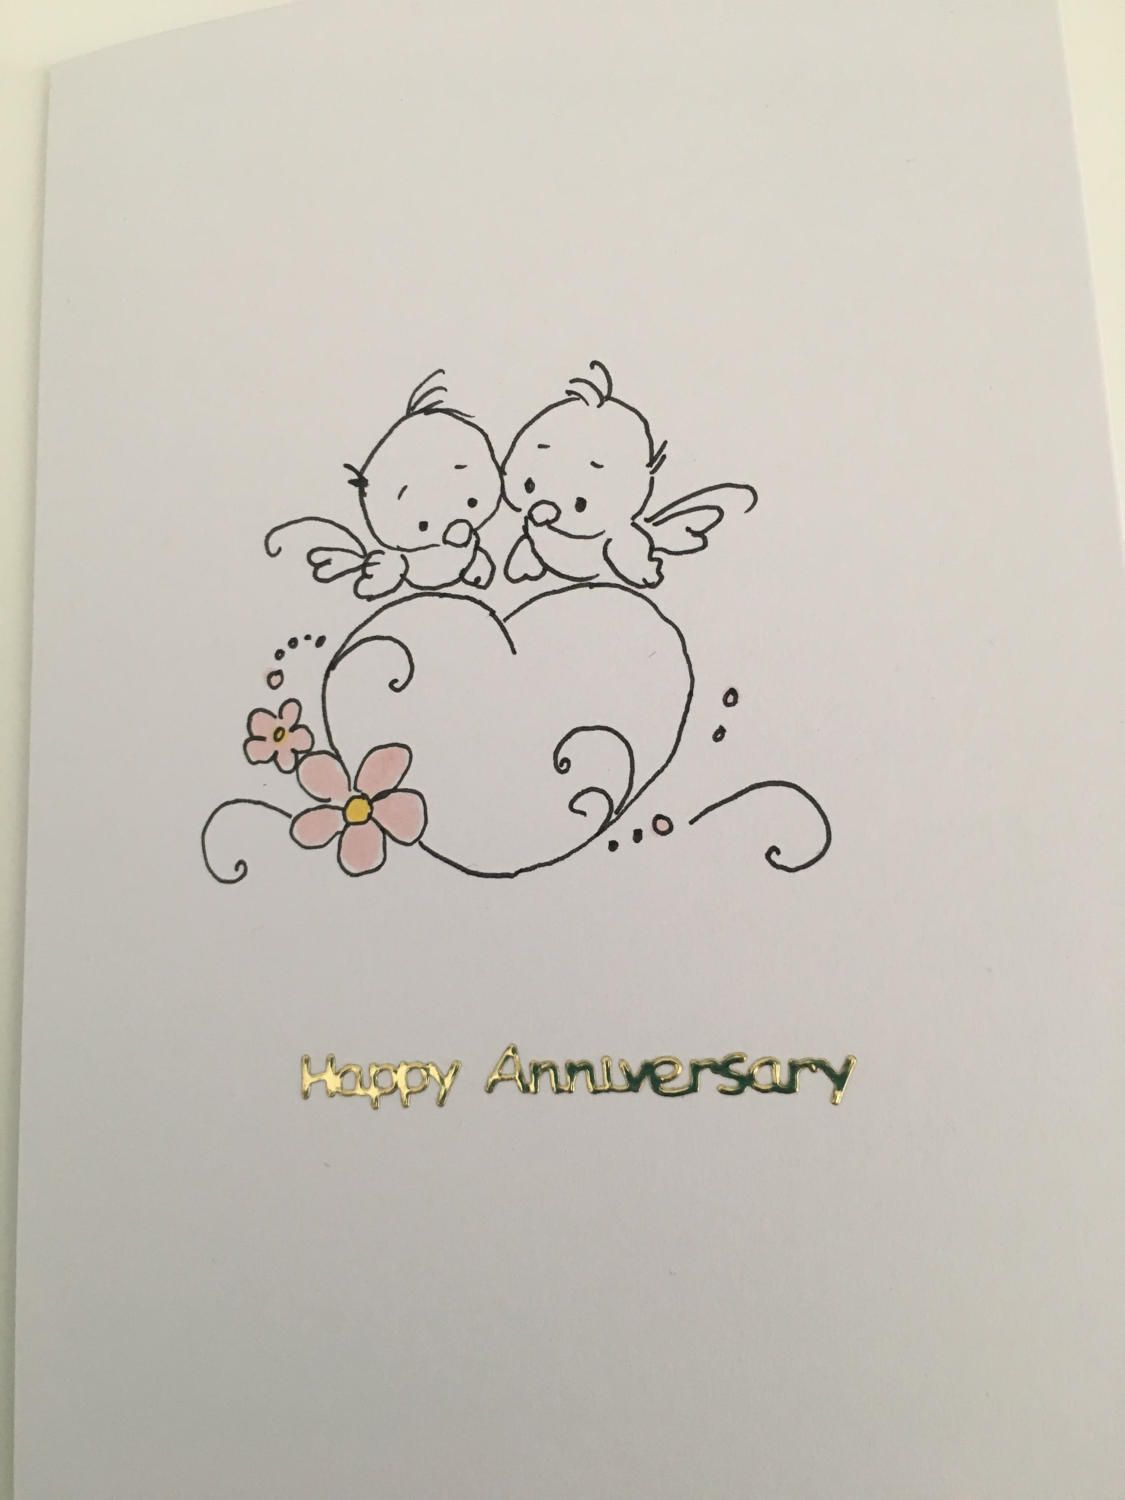 Happy Anniversary Card Hand Drawn By Lilyinnovationdesign On Etsy Card Drawing Happy Anniversary Cards Anniversary Cards